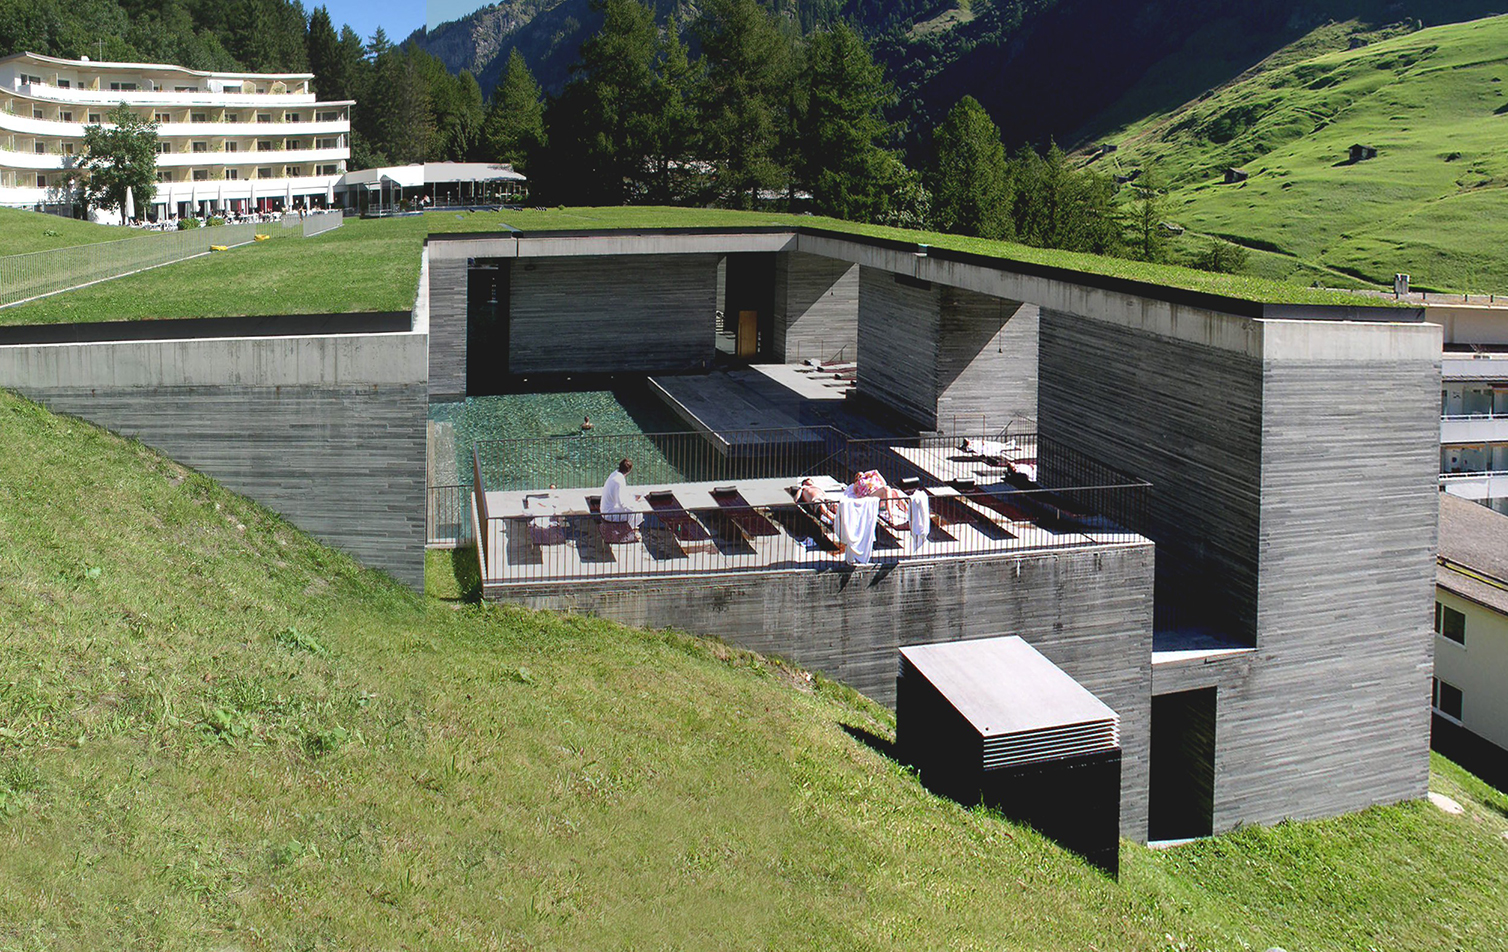 Therme vals switzerland peter zumthor ideasgn for Design hotel vals